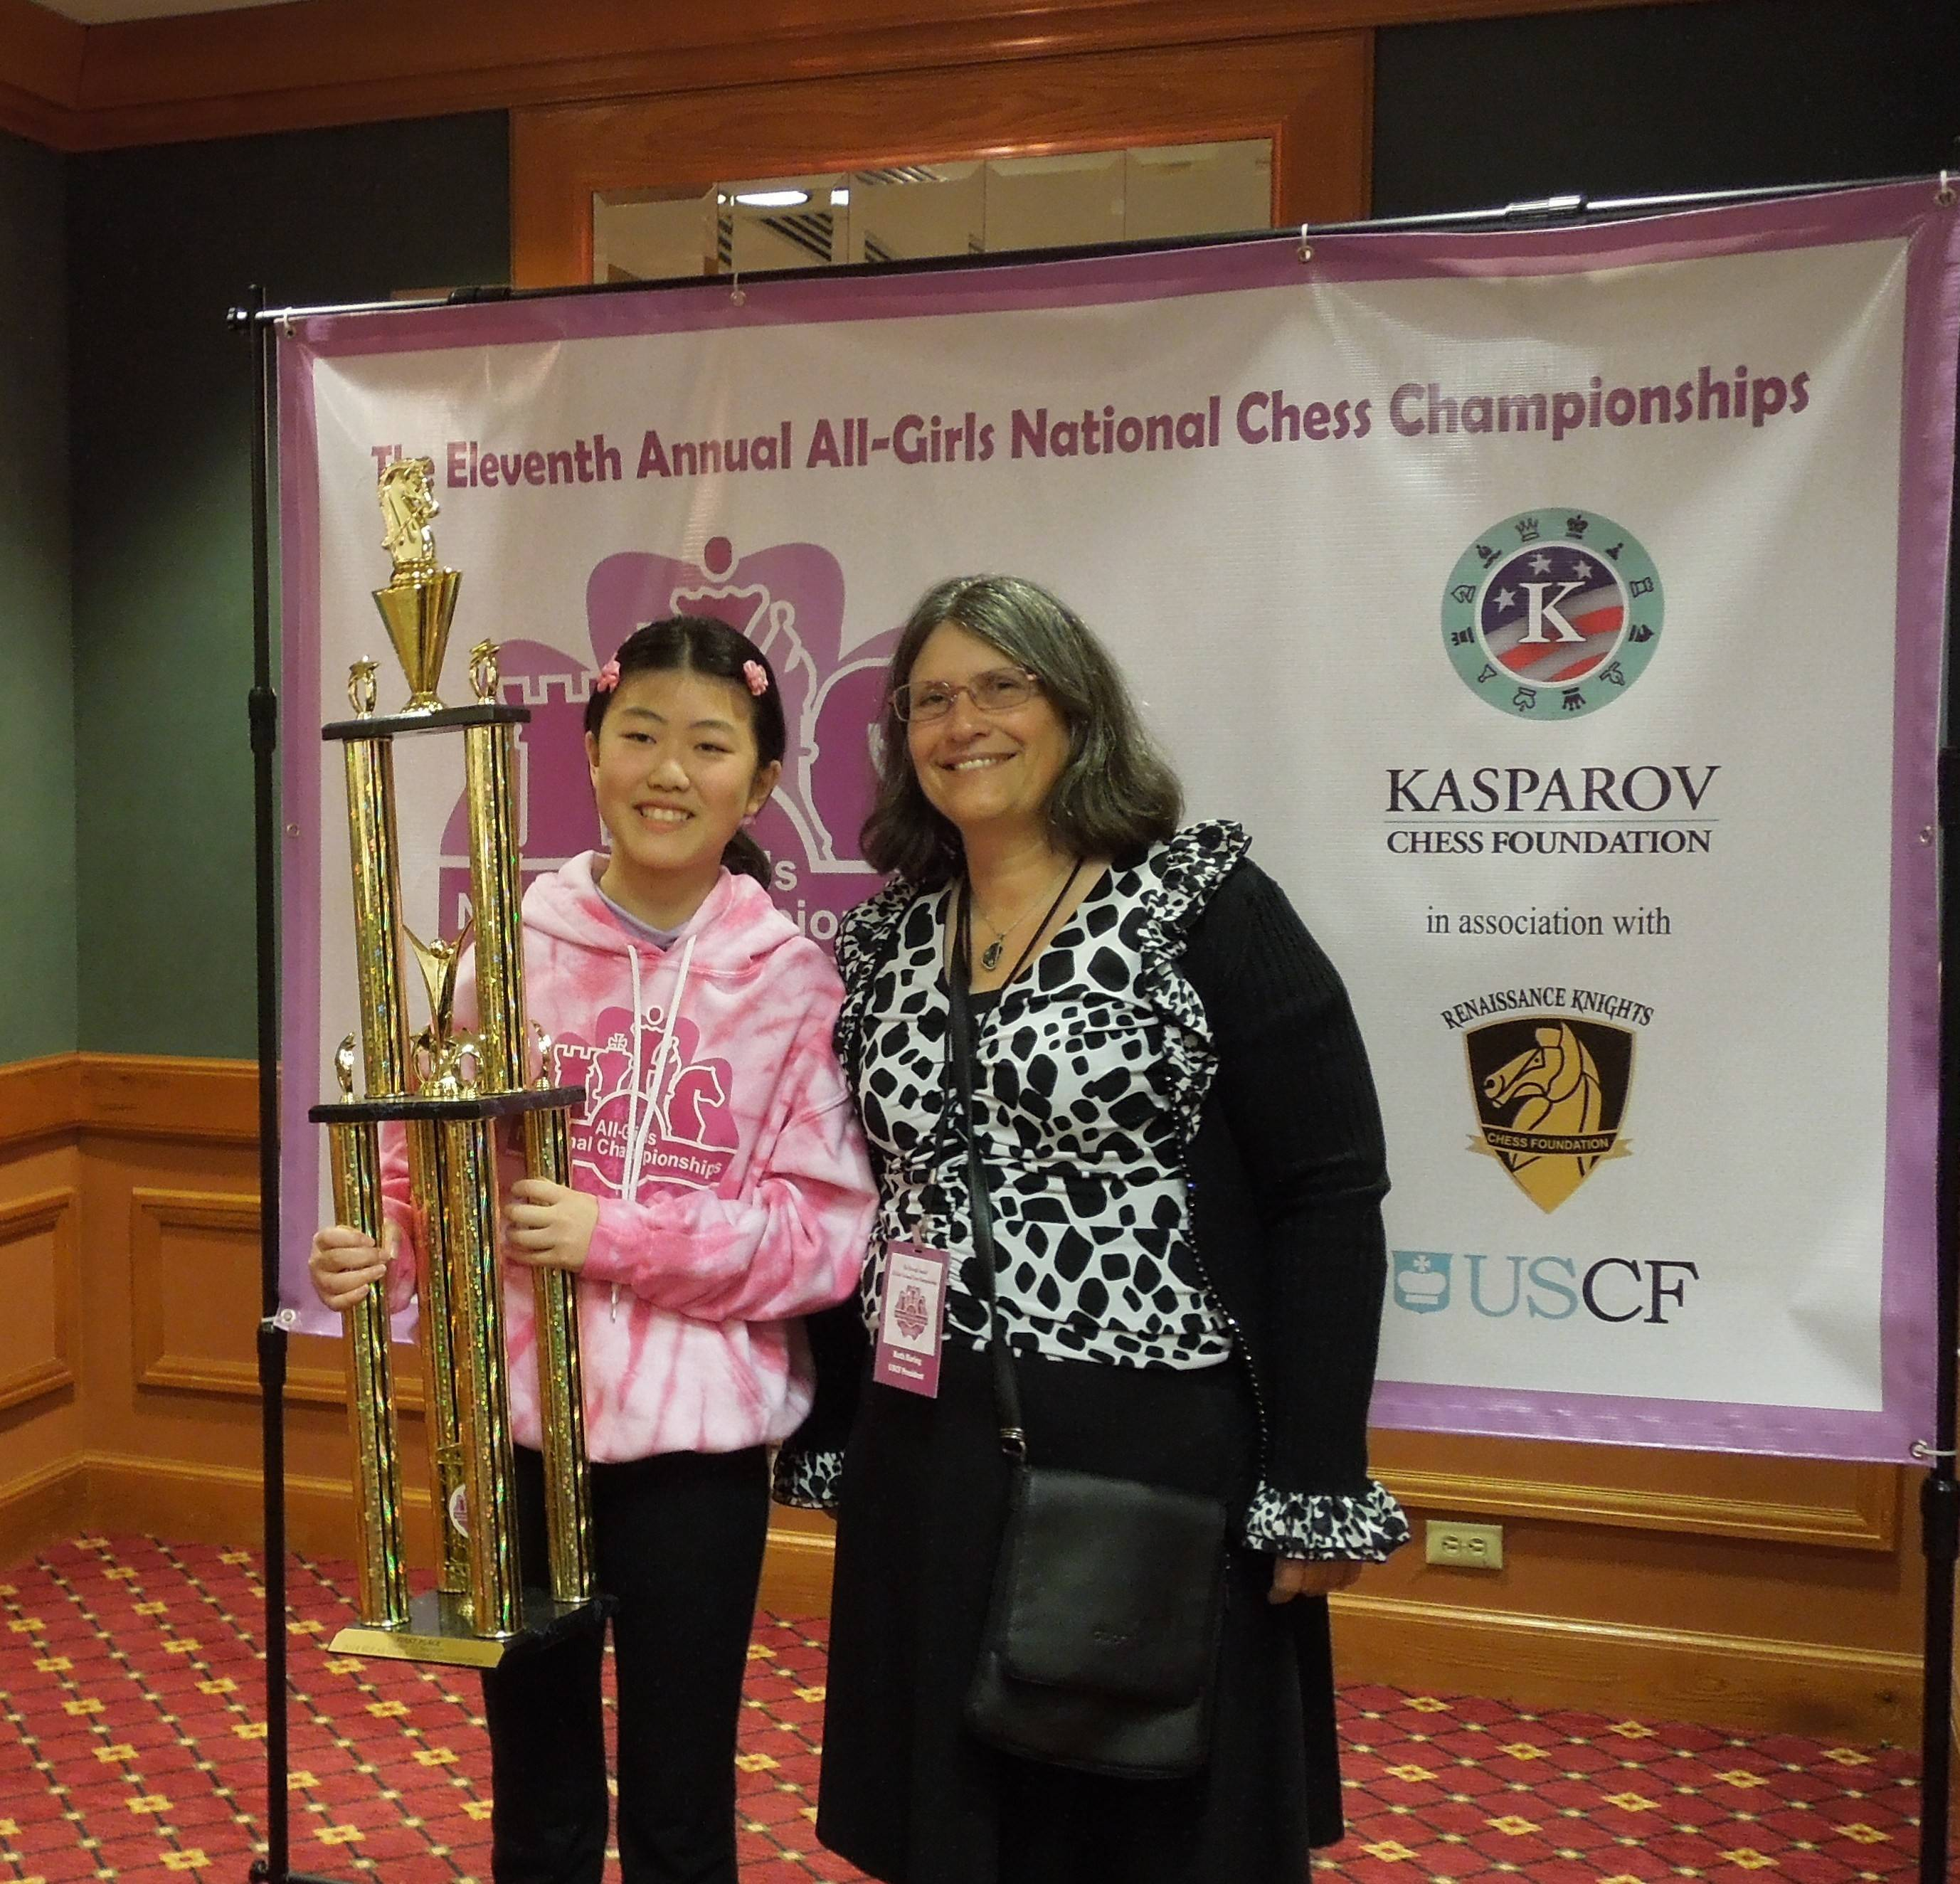 Marissa Li, left, proudly displays her trophy alongside United States Chess Federation President Ruth Haring.